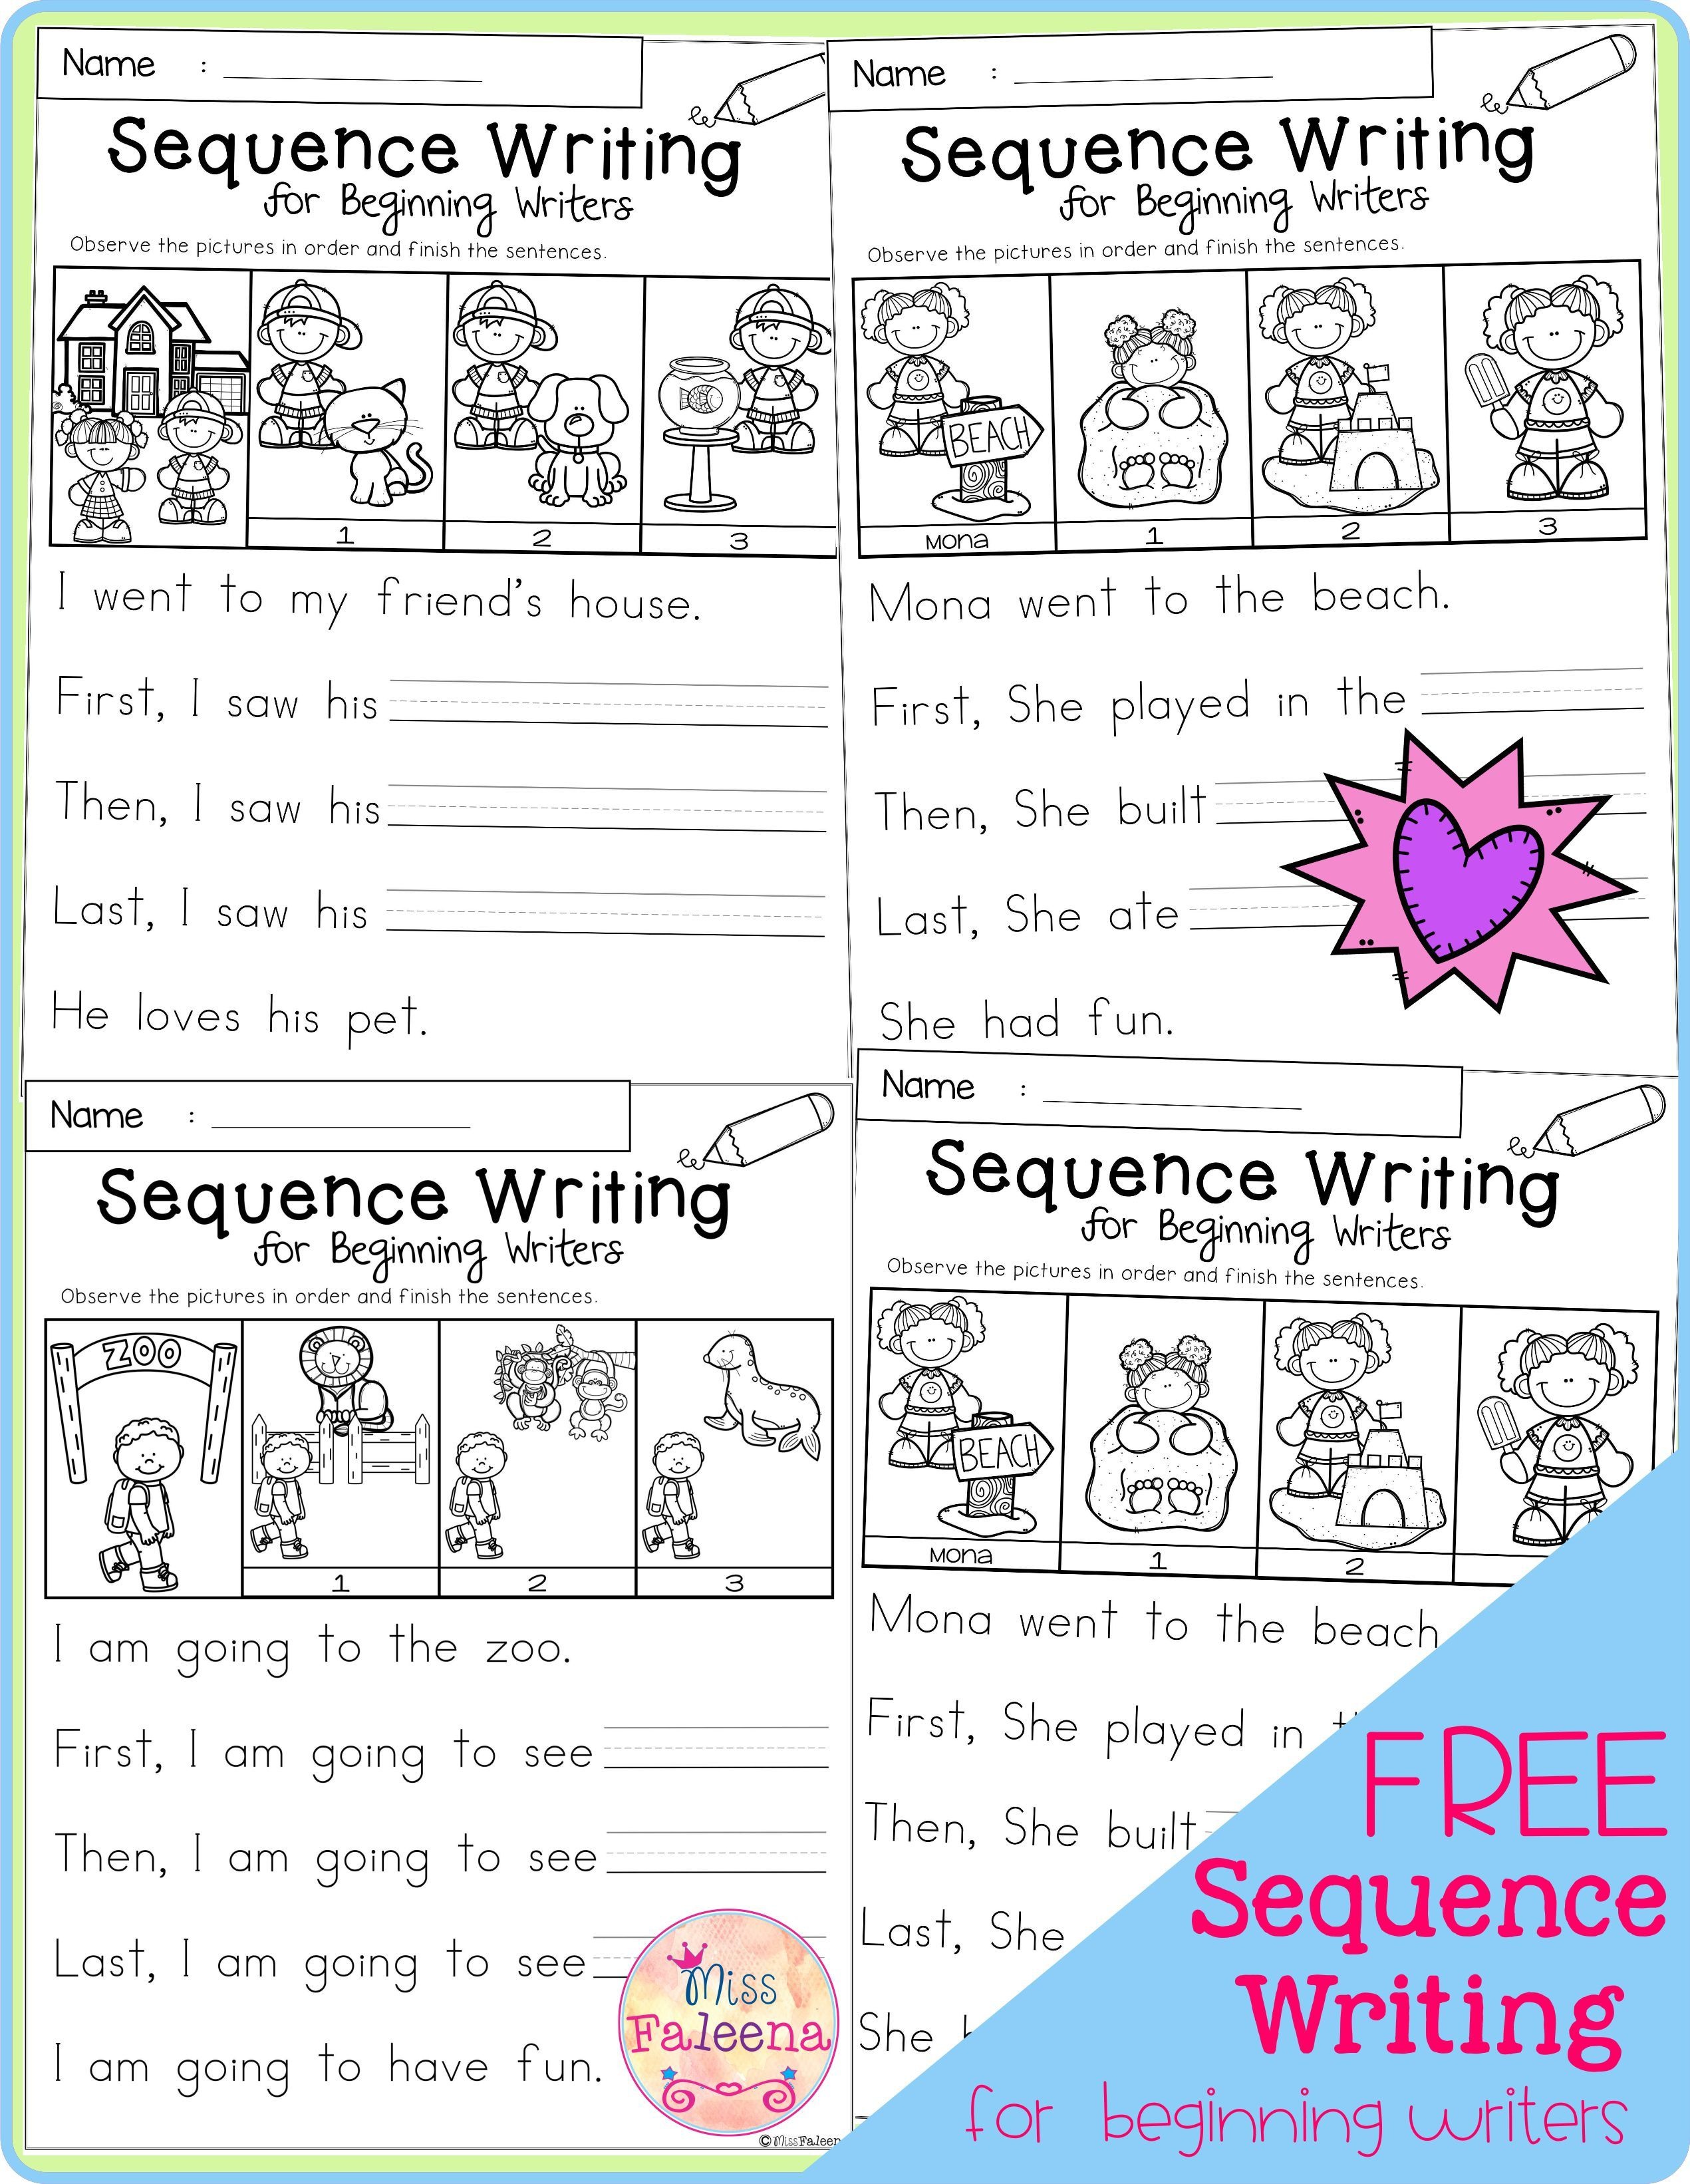 Free Sequence Writing For Beginning Writers Di